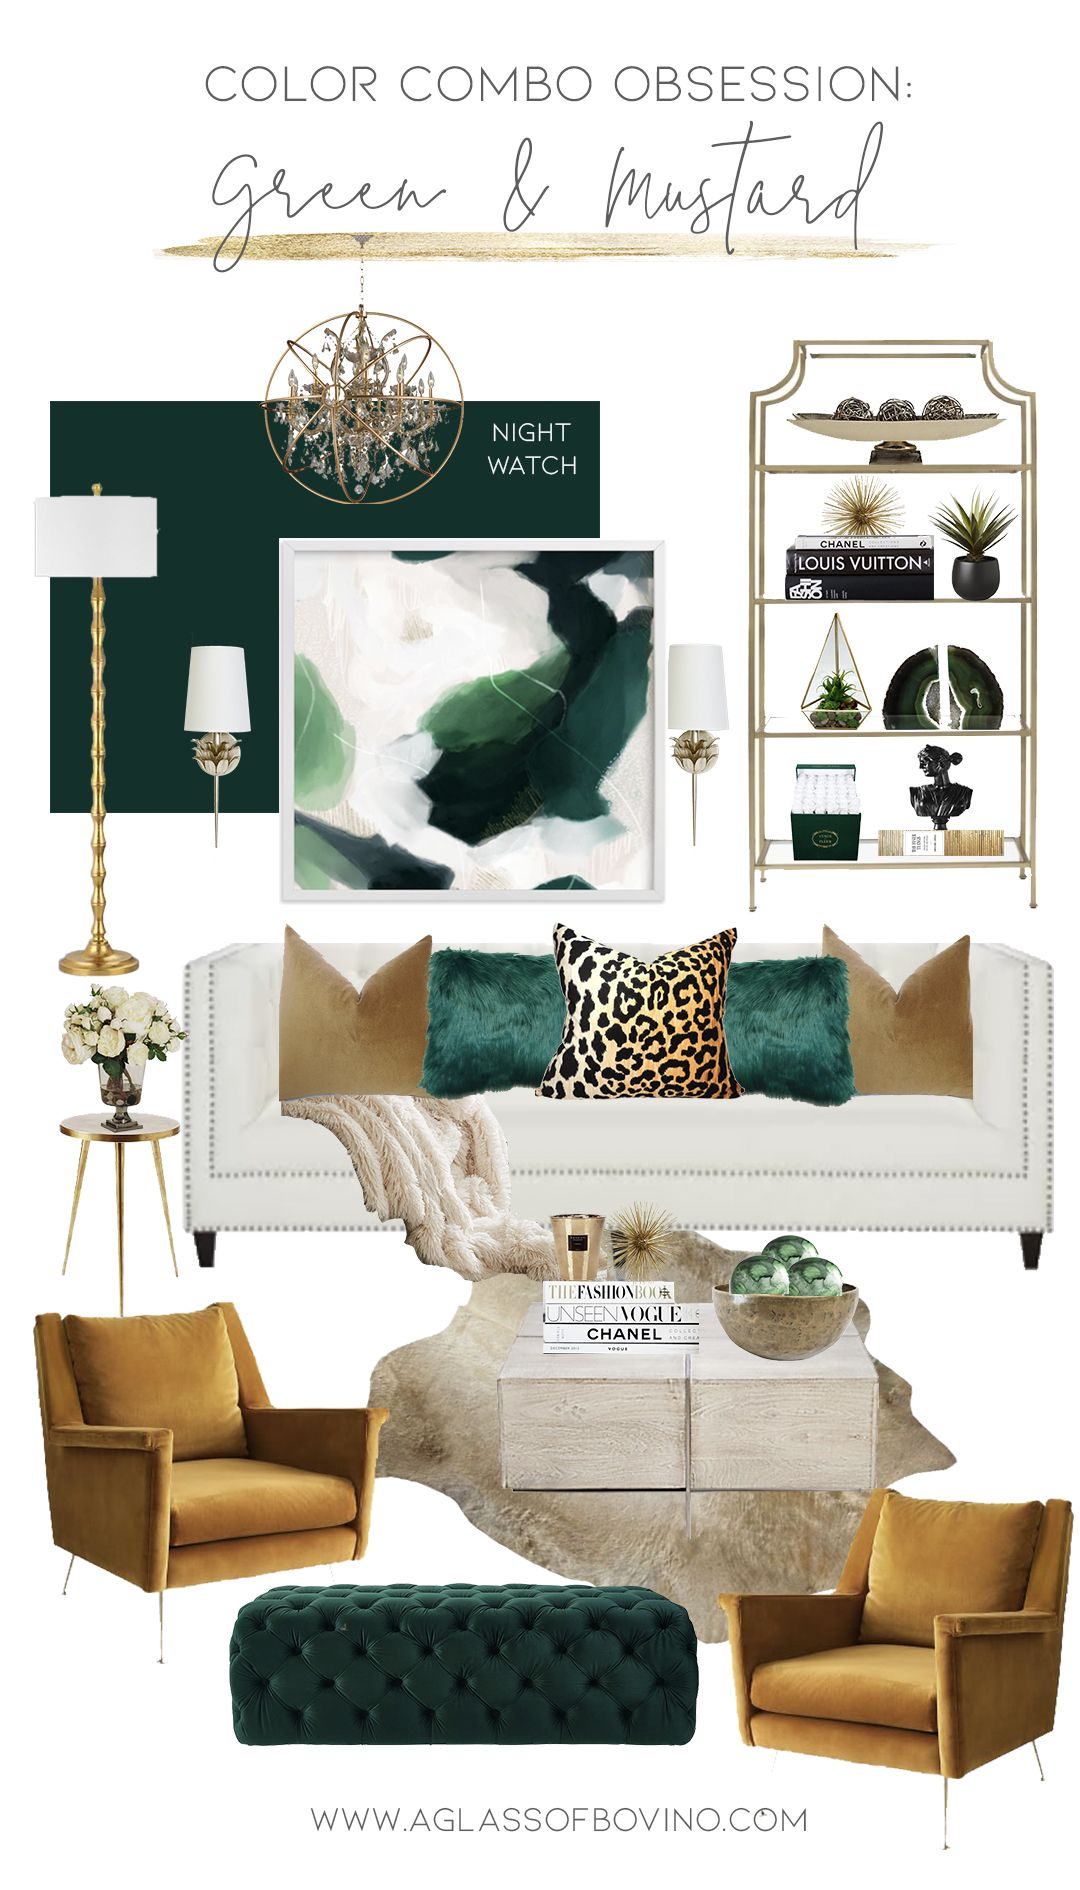 Color Combo Obsession Designing With Green And Mustard Green